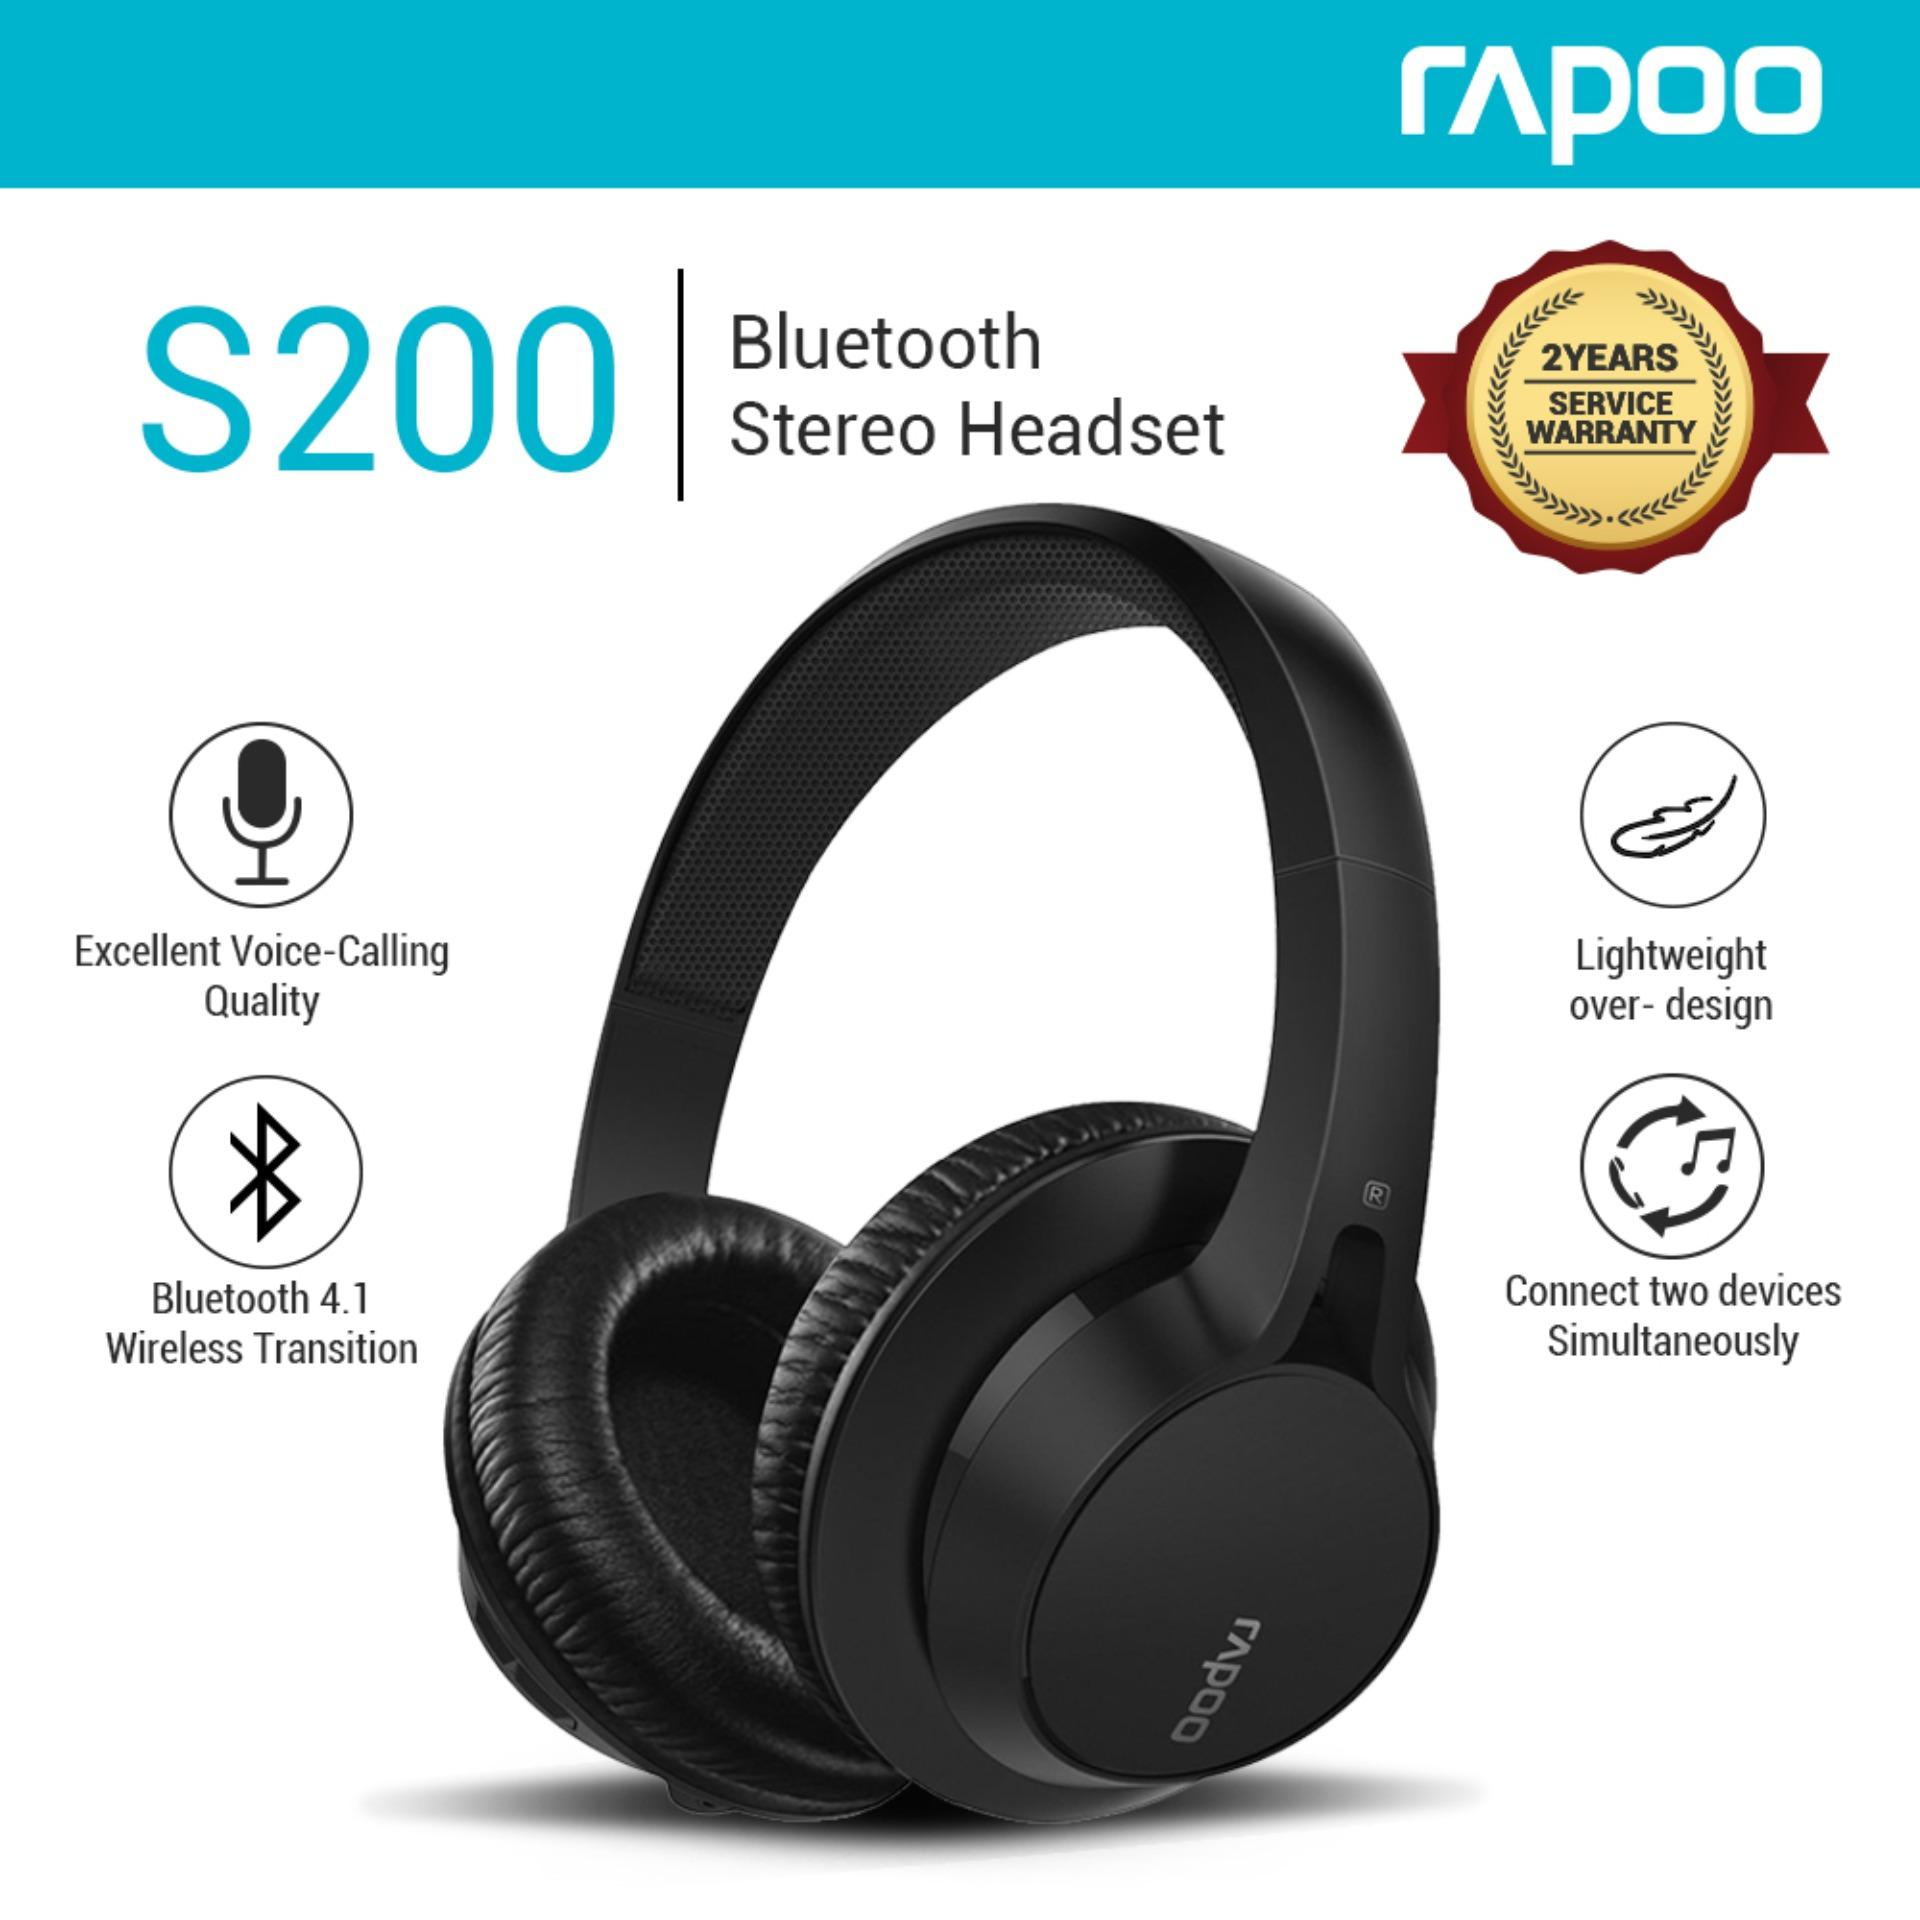 22ccdd799b1 Product details of Rapoo S200 Bluetooth 4.1 Middle Level Over Ear Headset  Stereo Headphones